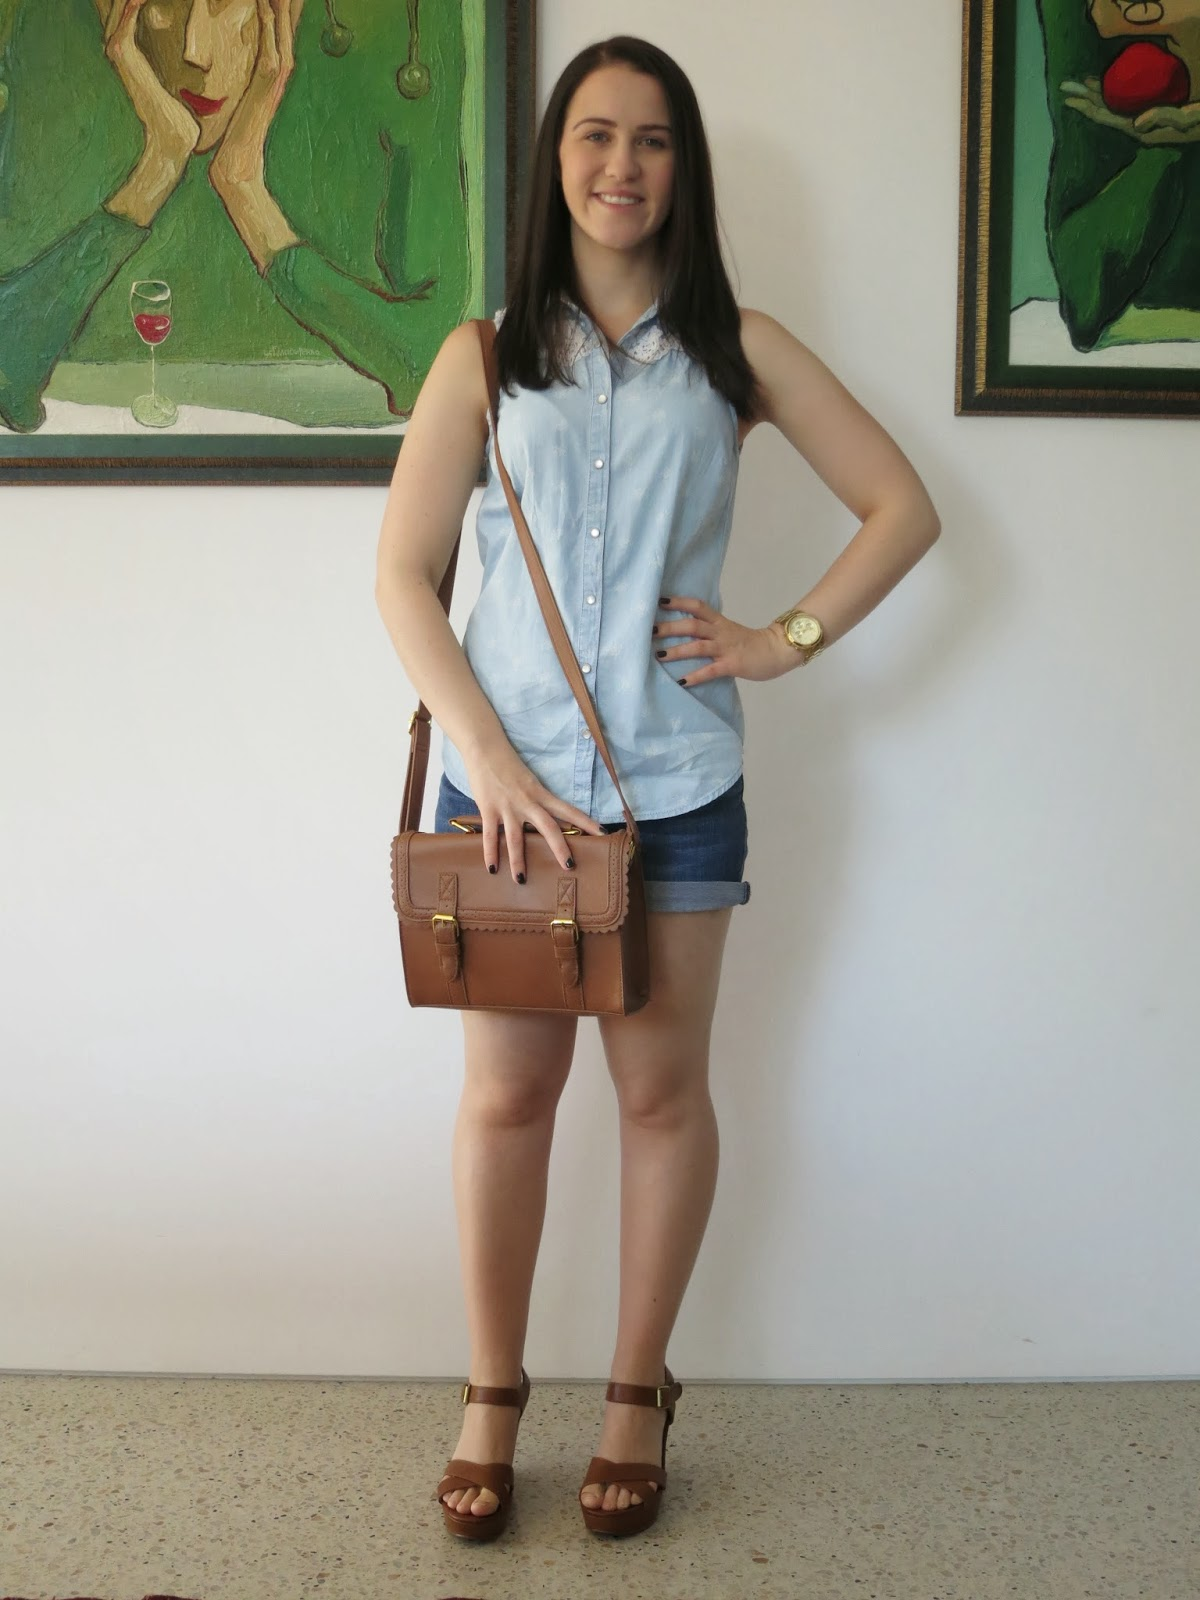 everyday outfit, petite outfit, double denim, chambray, tan wedges and bag, summer outfit, lace detailing